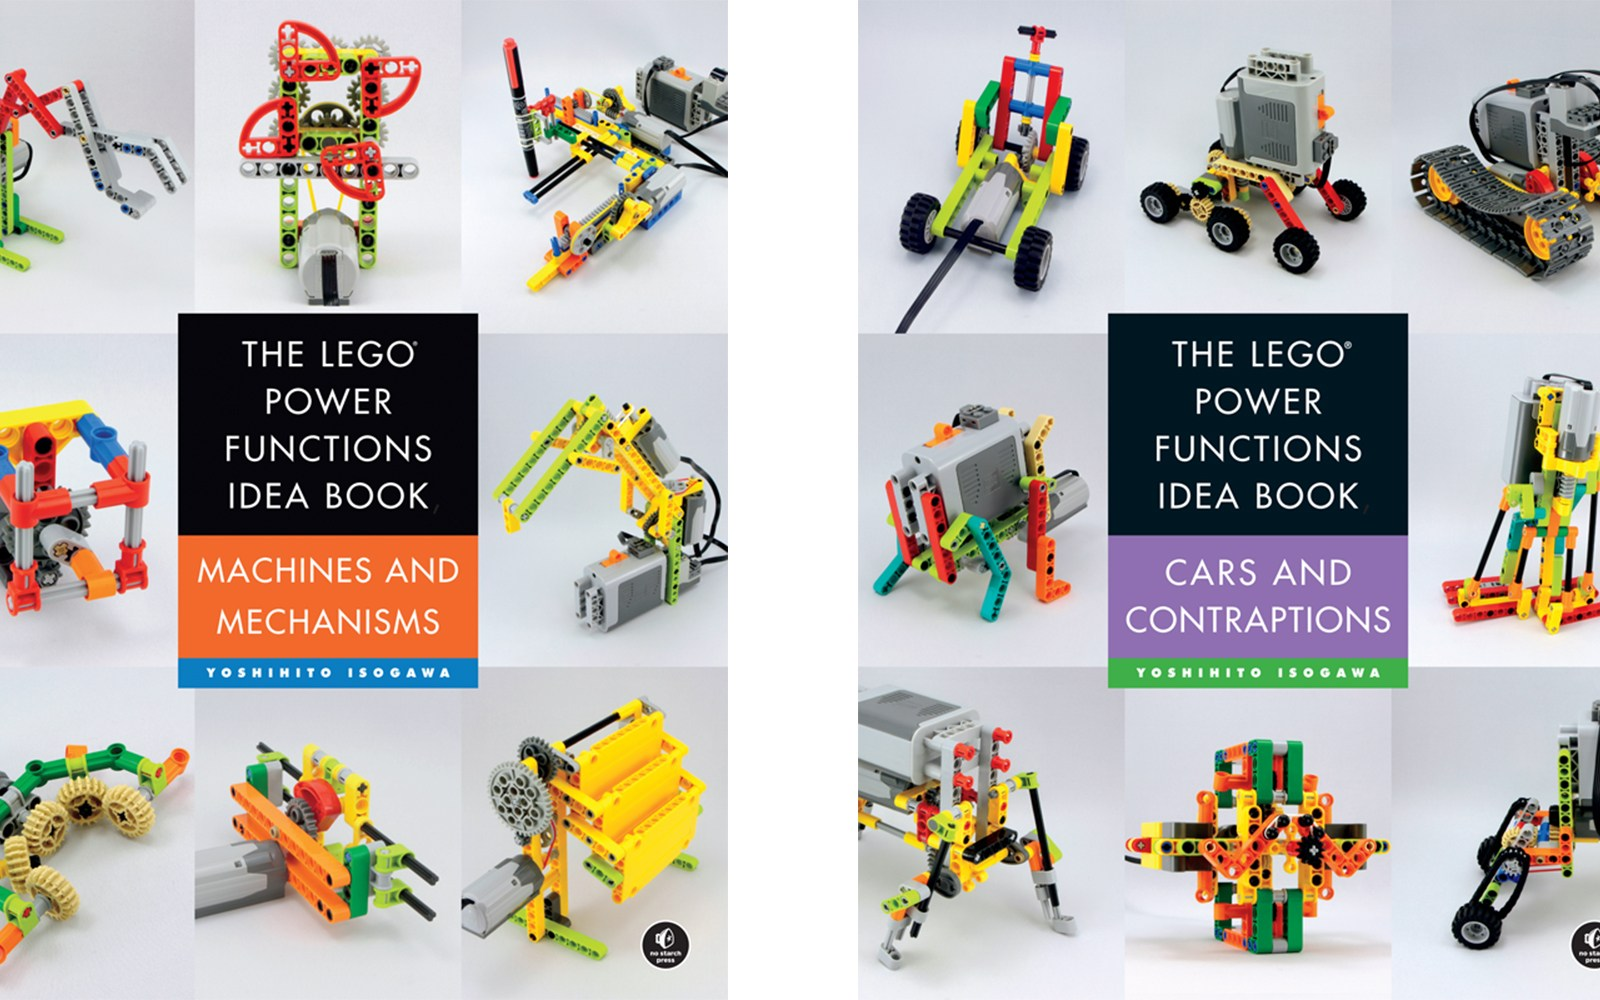 The LEGO Power Functions Idea Book teaches you how to build cars, contraptions and more